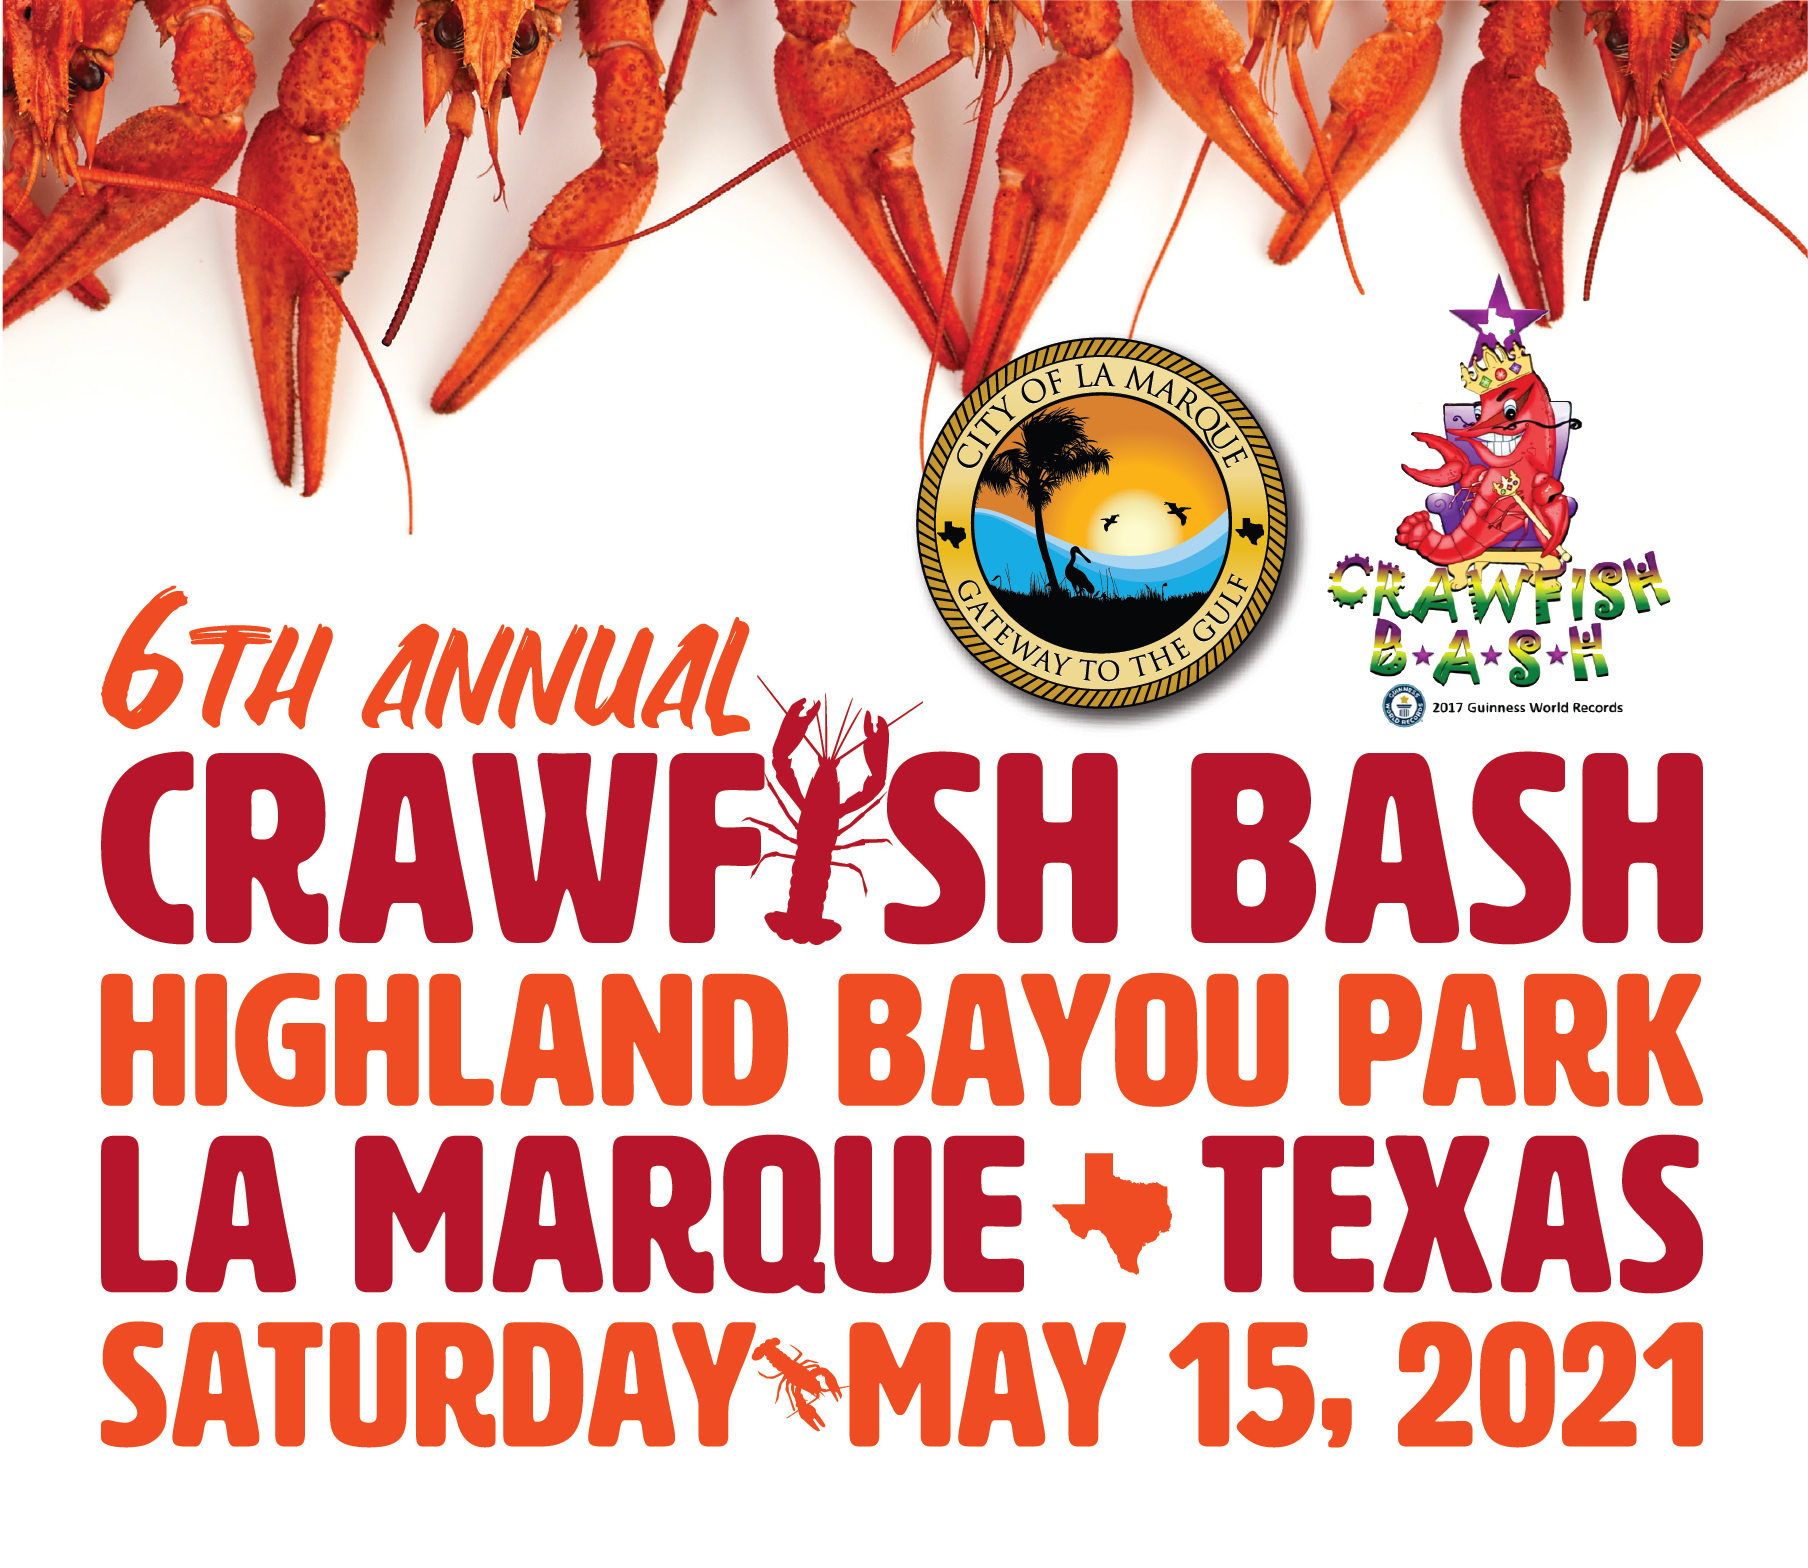 Crawfish Bash 2021